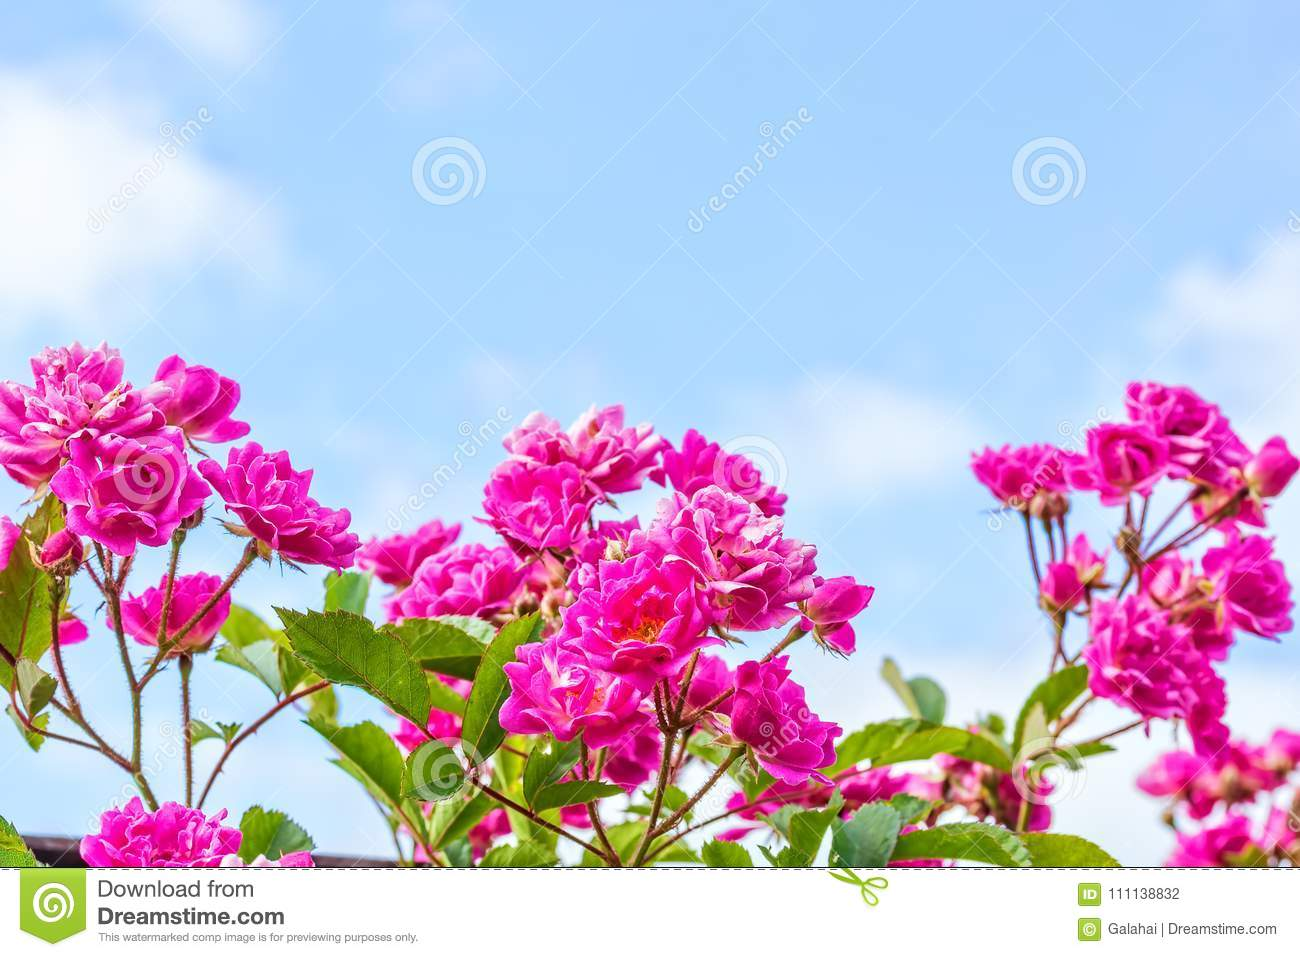 Flowers Of A Pink Rose On The Background Of Blue Sky Stock Photo